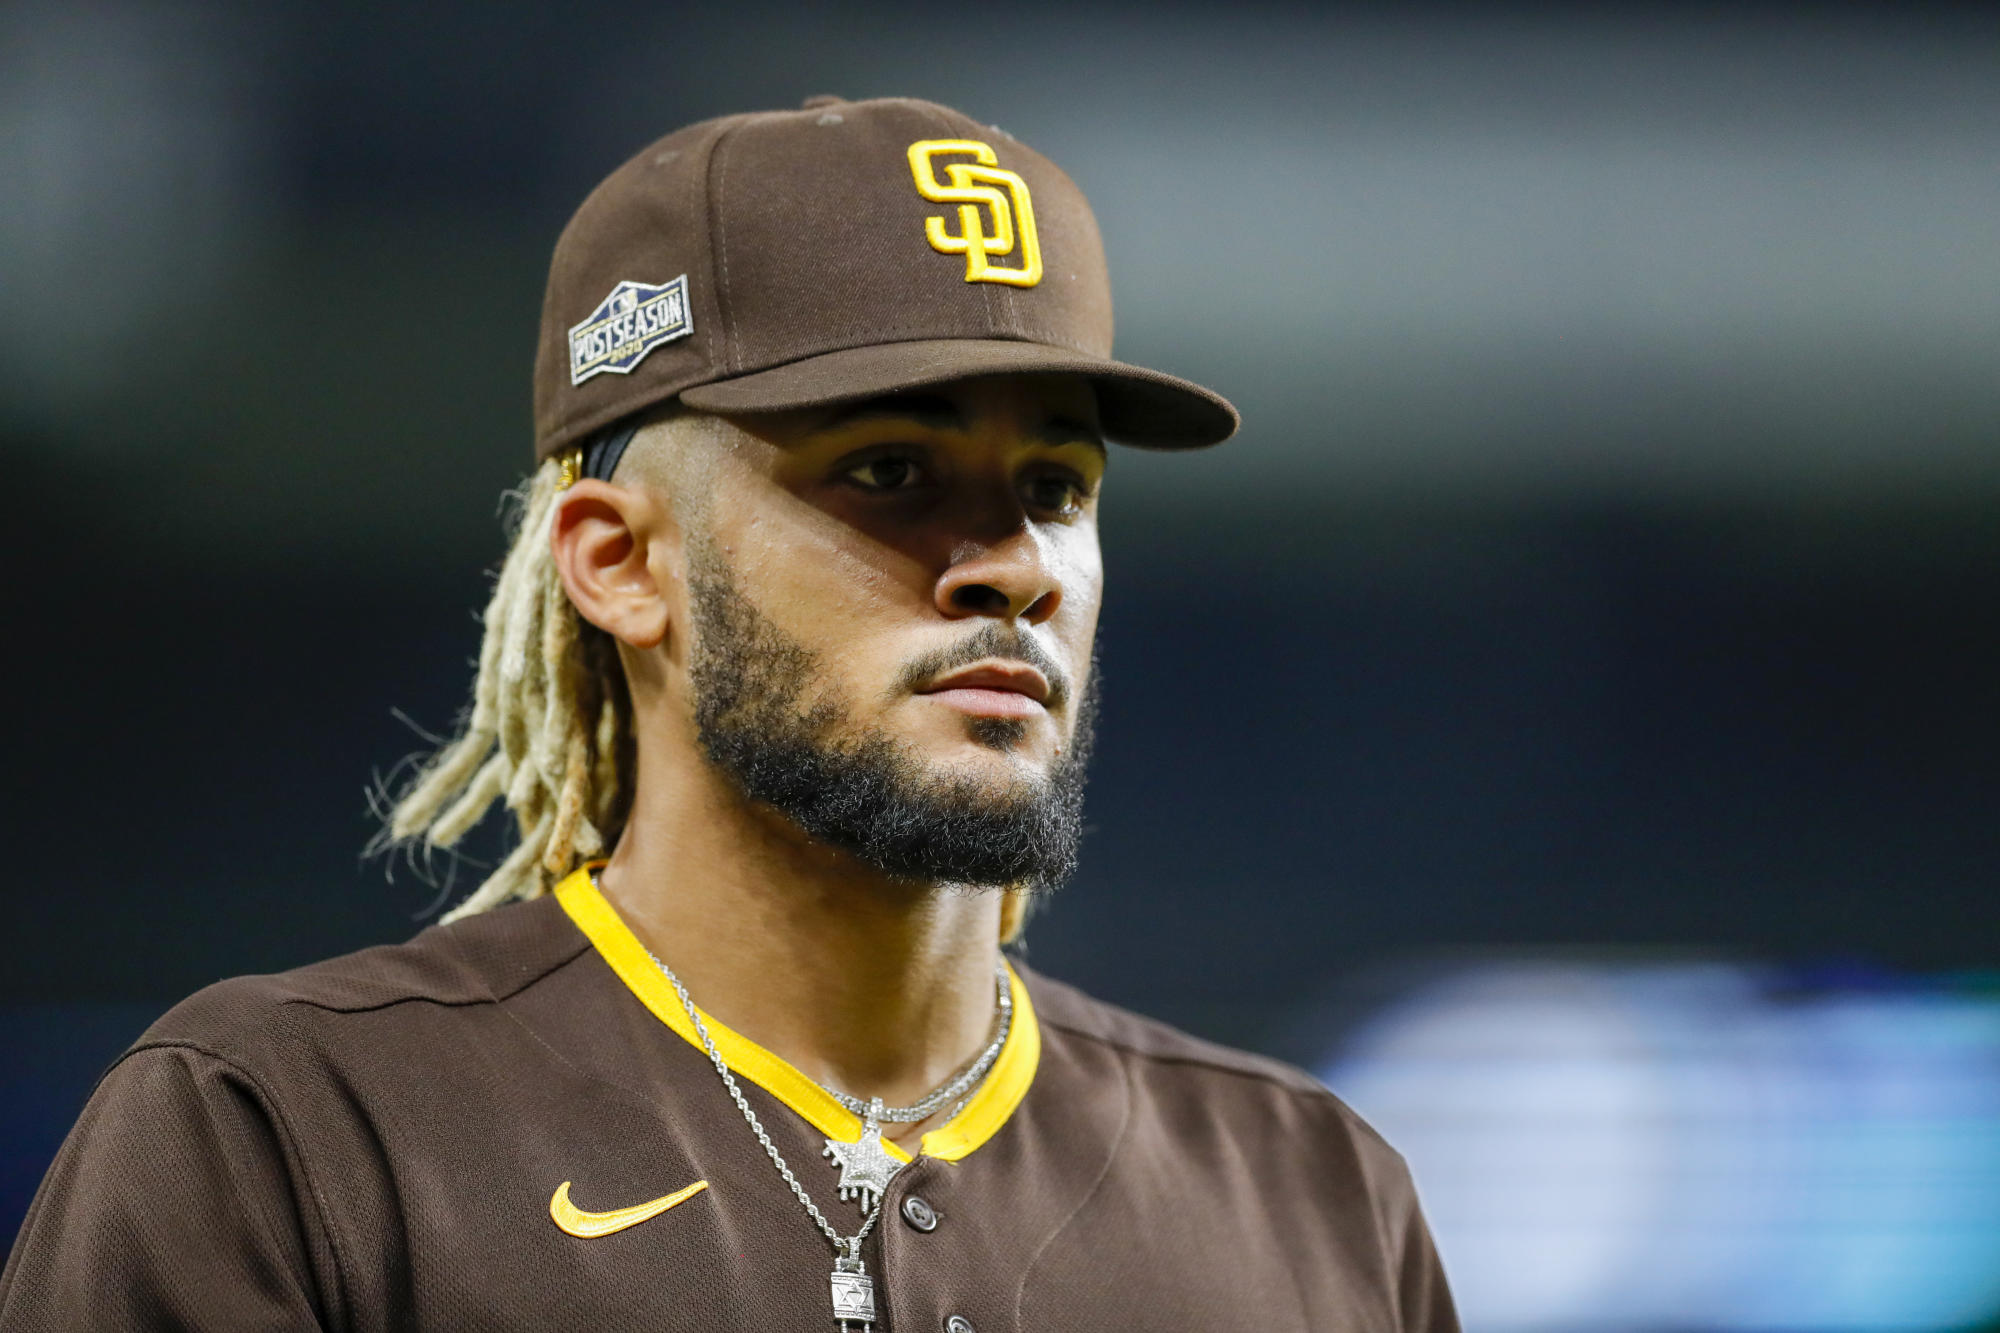 Fernando Tatis Jr. wont be seeing all of that $340 million, thanks to a deal he made as a minor leaguer - Yahoo Sports